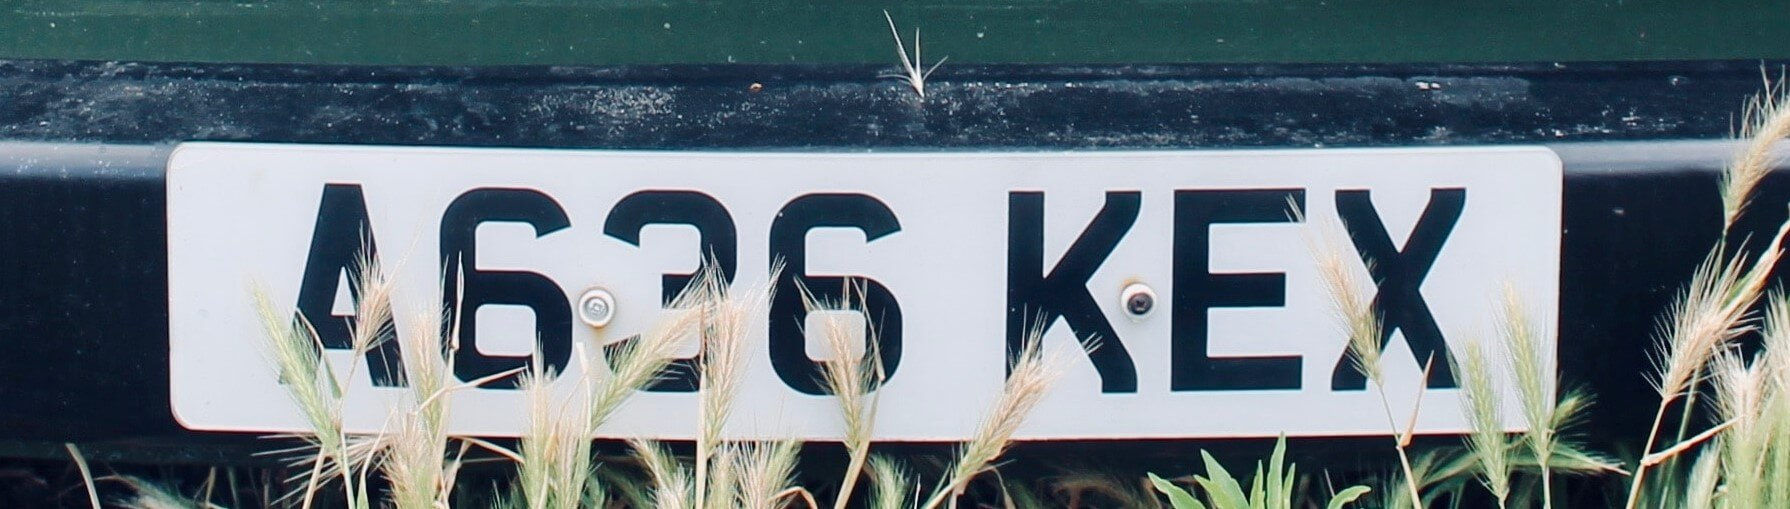 white uk licence plate